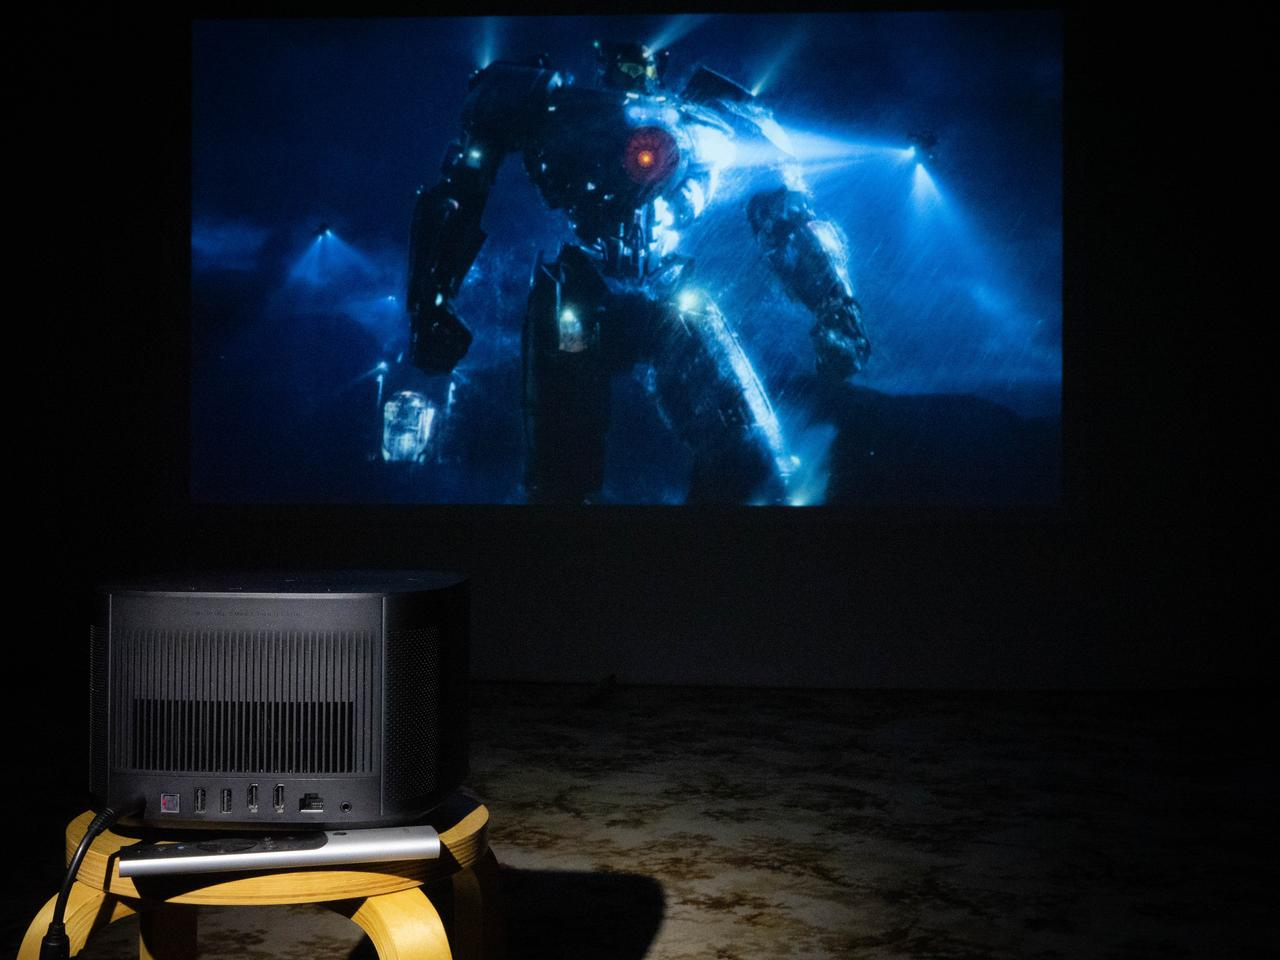 One-step home theater: the XGIMI Horizon Pro 4K projector